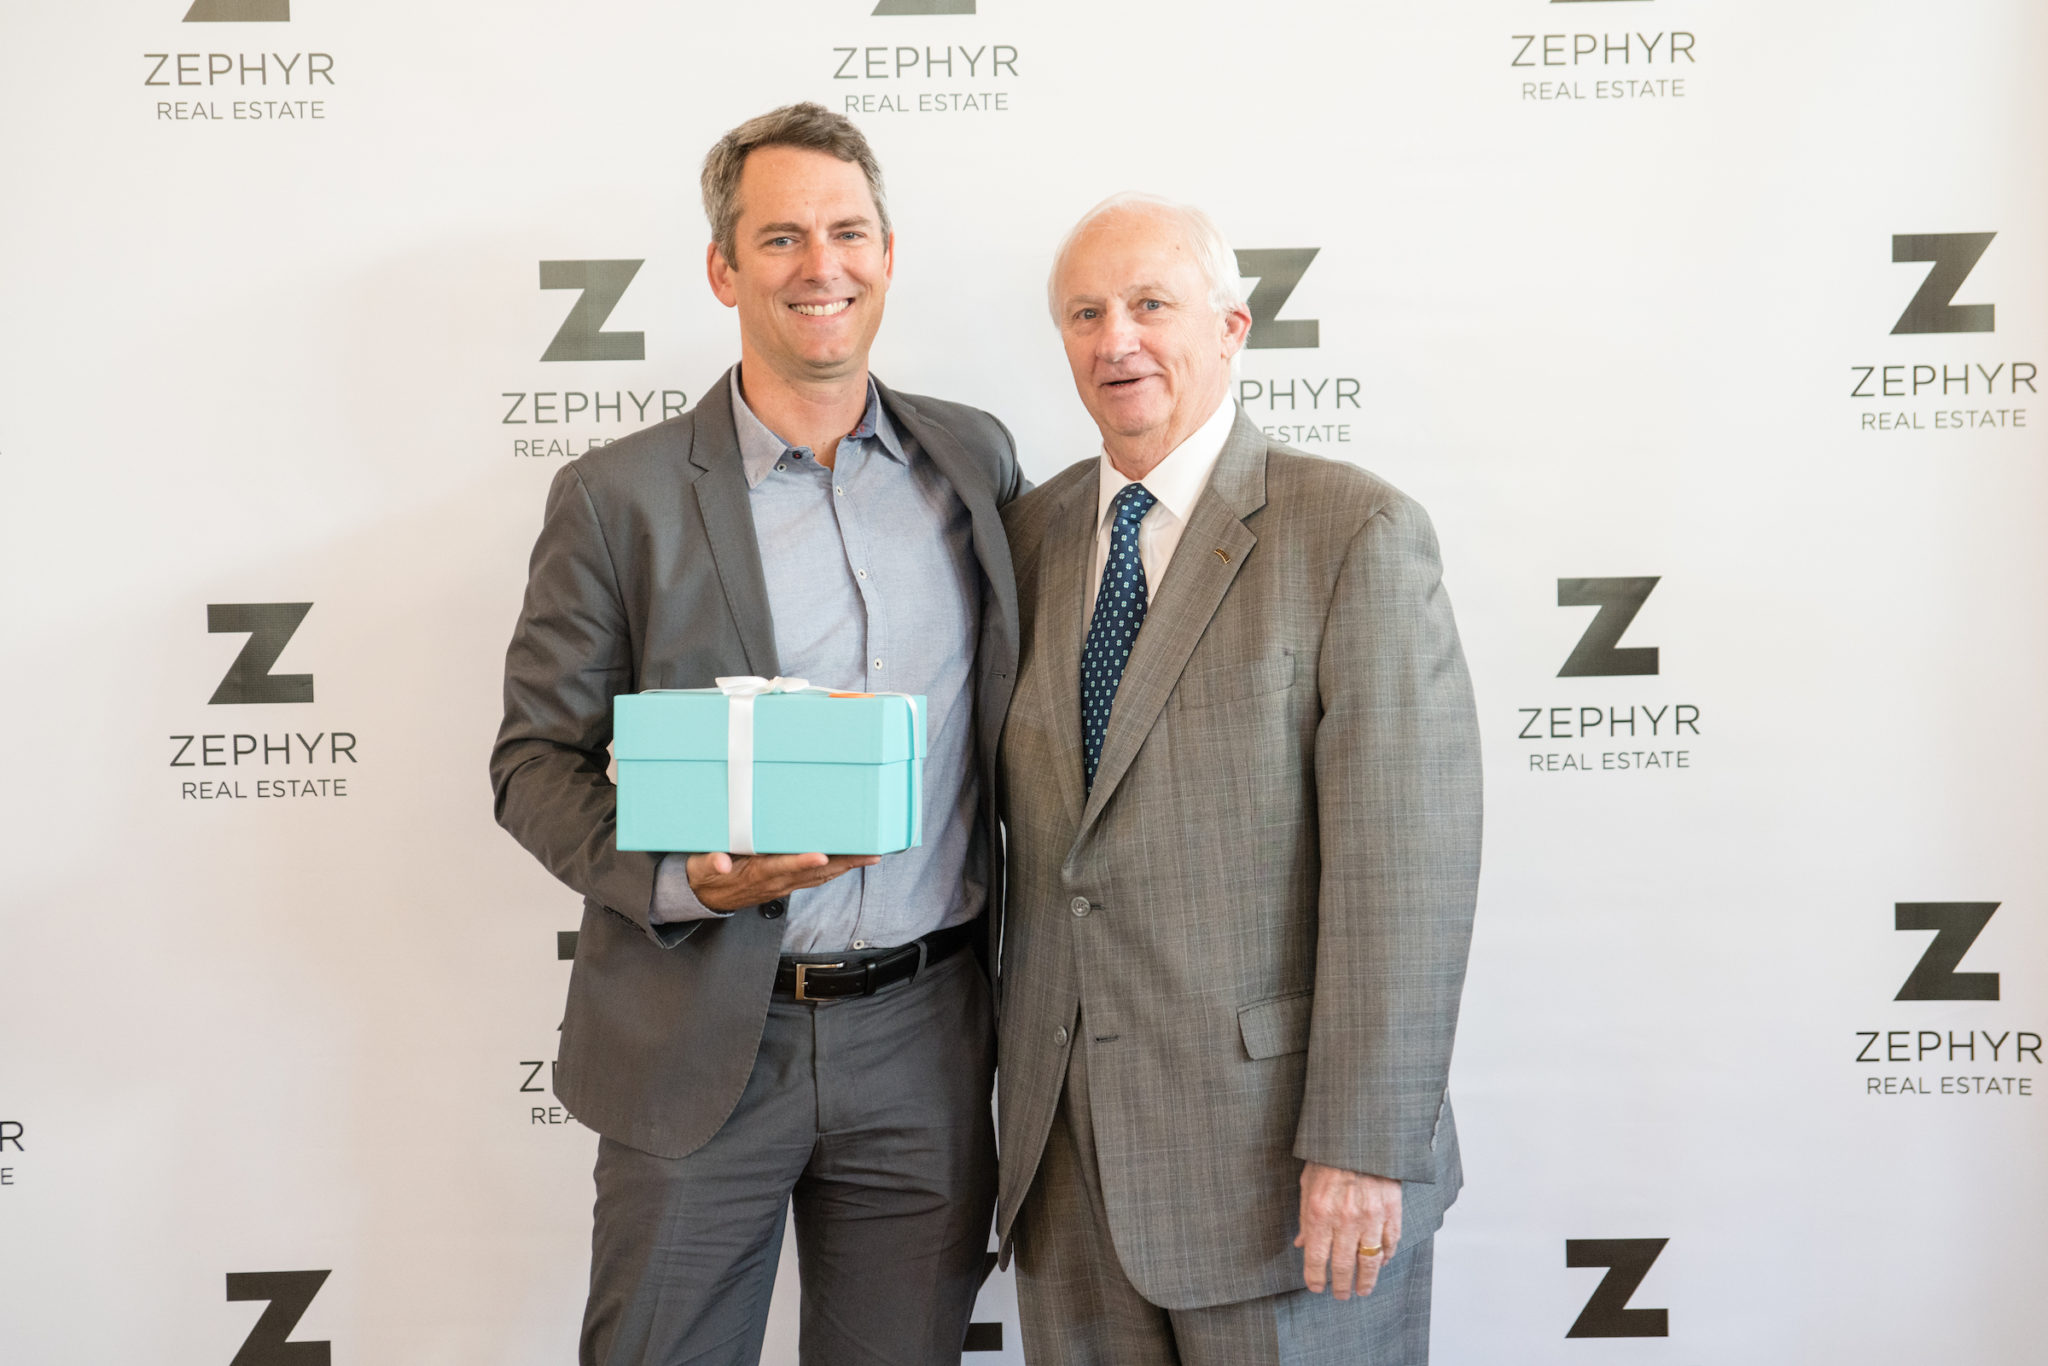 15 Years At Zephyr Real Estate